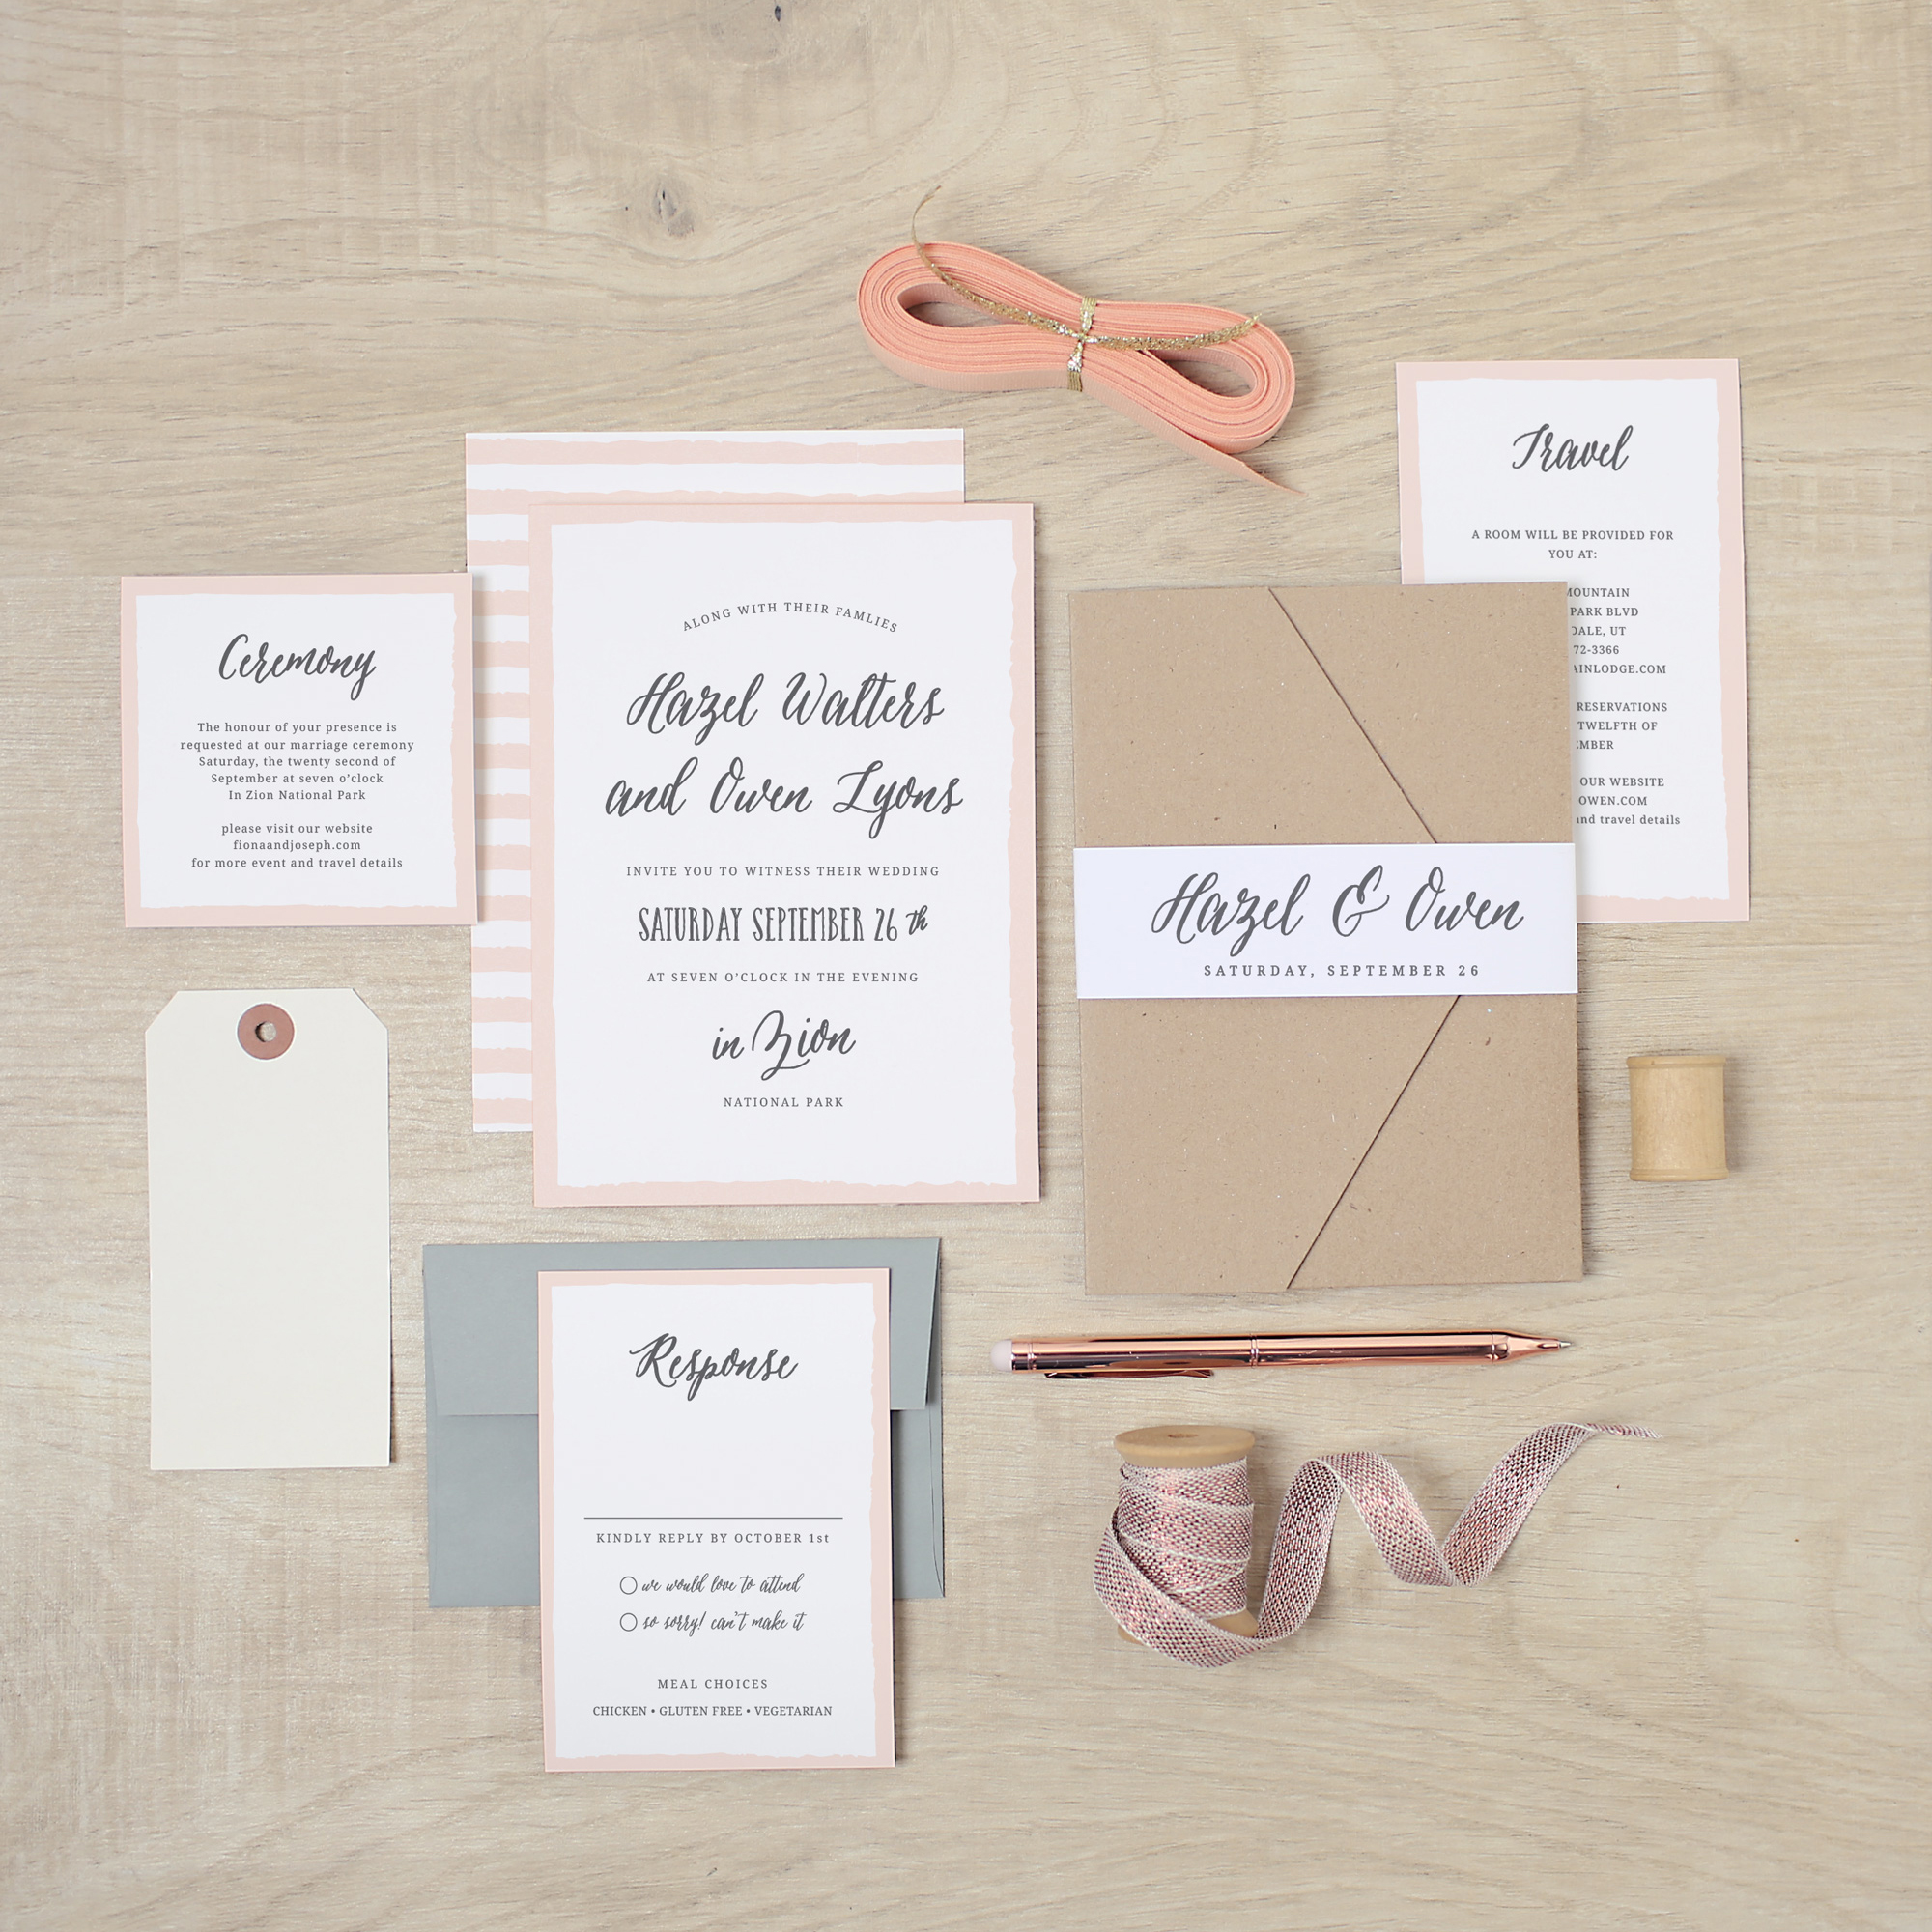 Basic Invite, Wedding Invitations, Tips on Creating the Perfect Invitations for All of Your Wedding Festivities